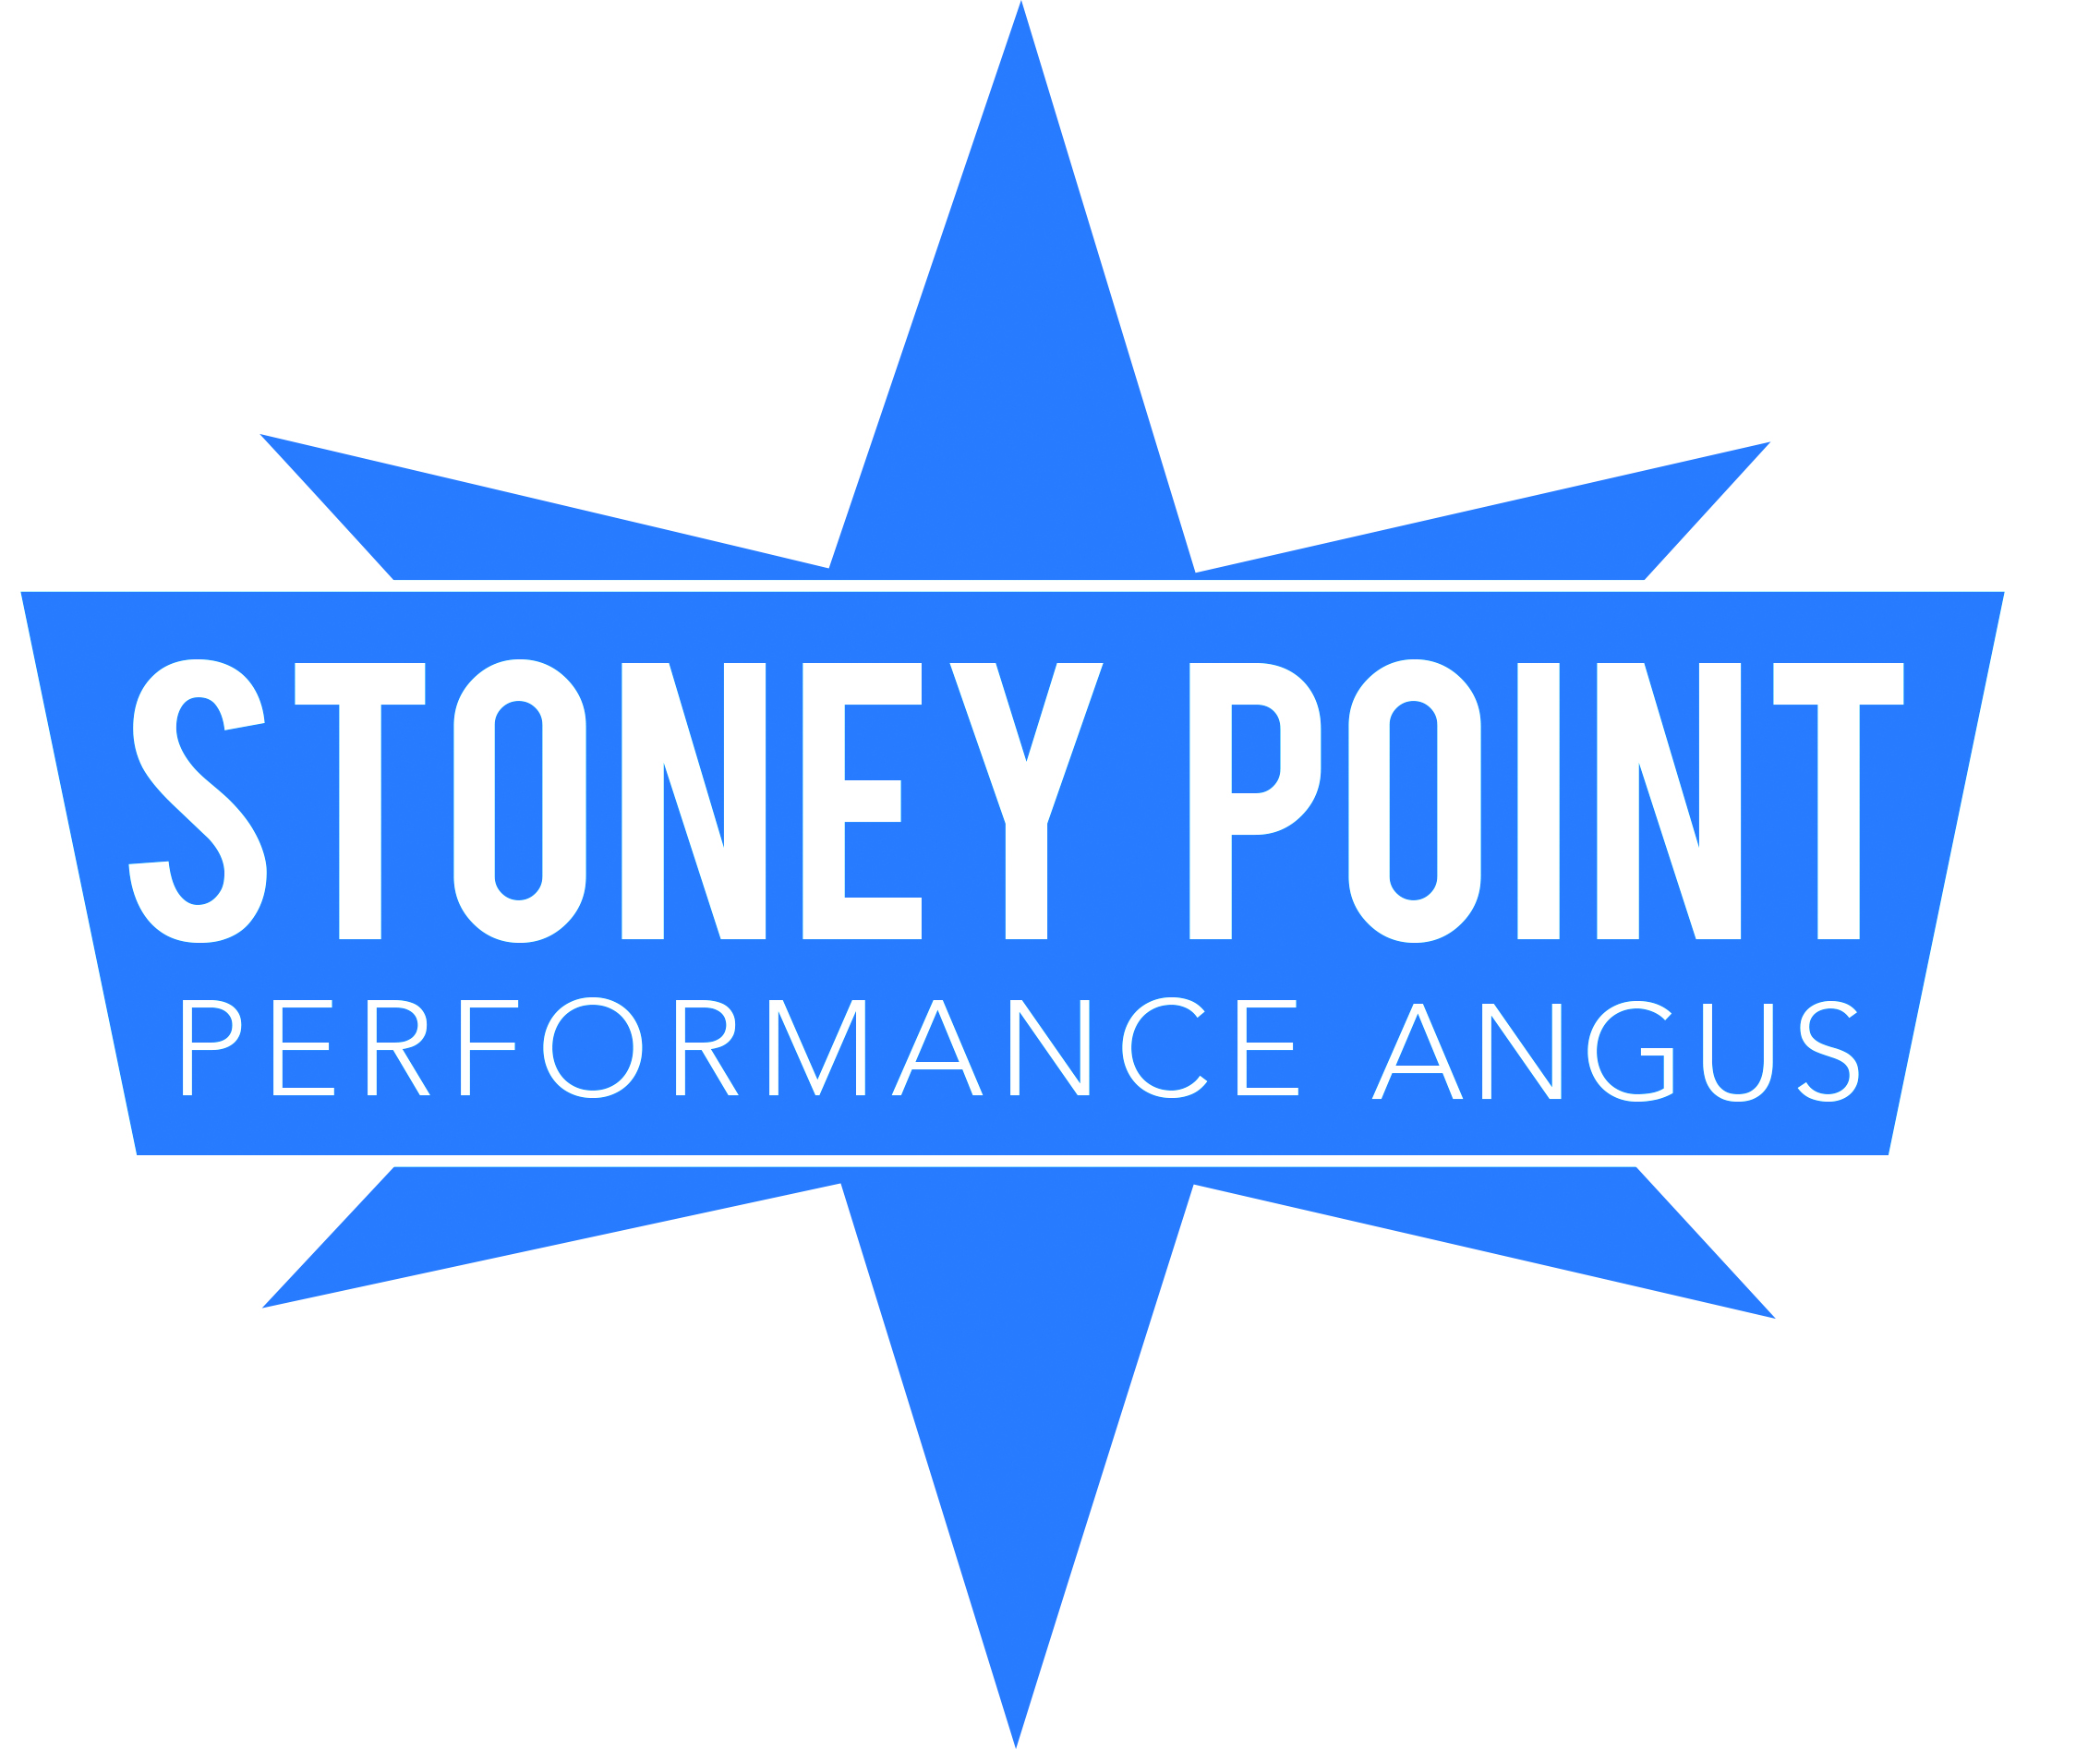 Stoney Point Performance Angus